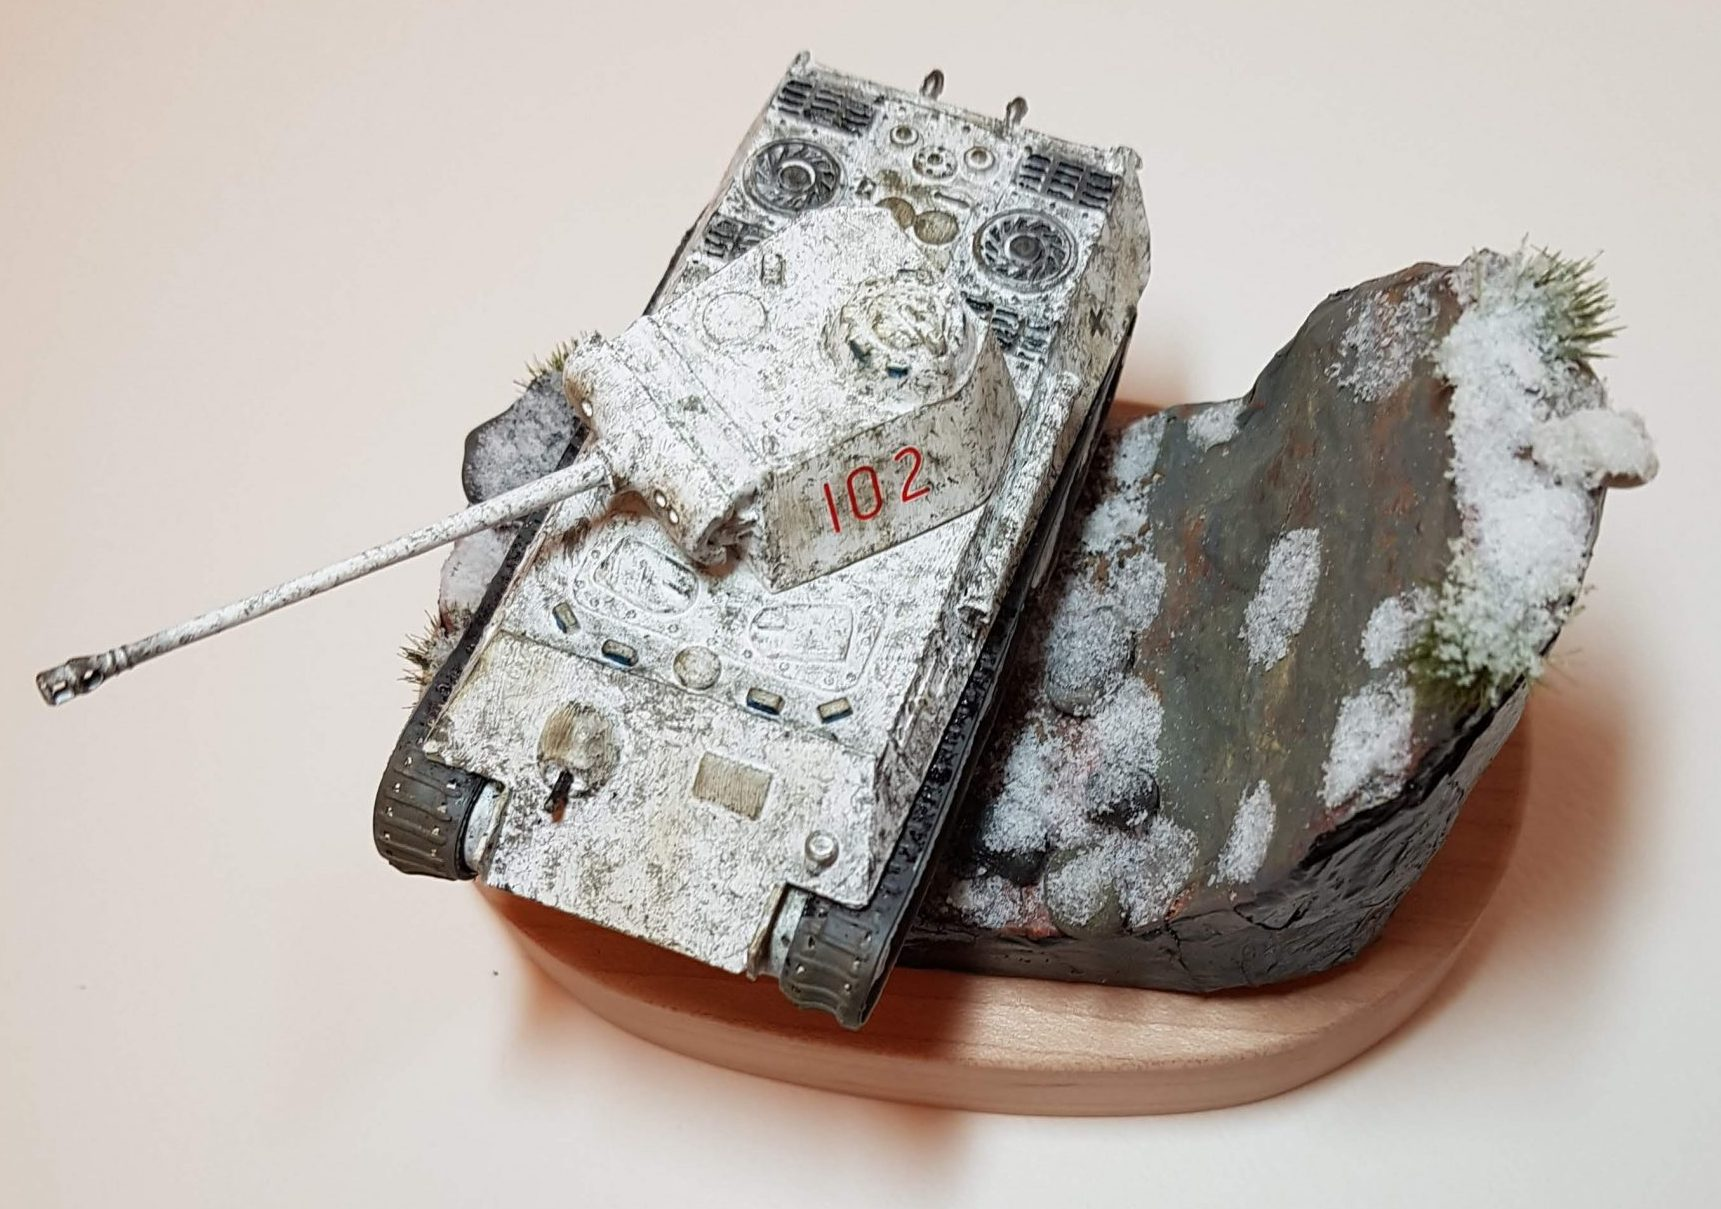 Model of Winter Panther Tank (WW2) - Top View - 1/76 Scale - Built By Wright Built - Airfix Models